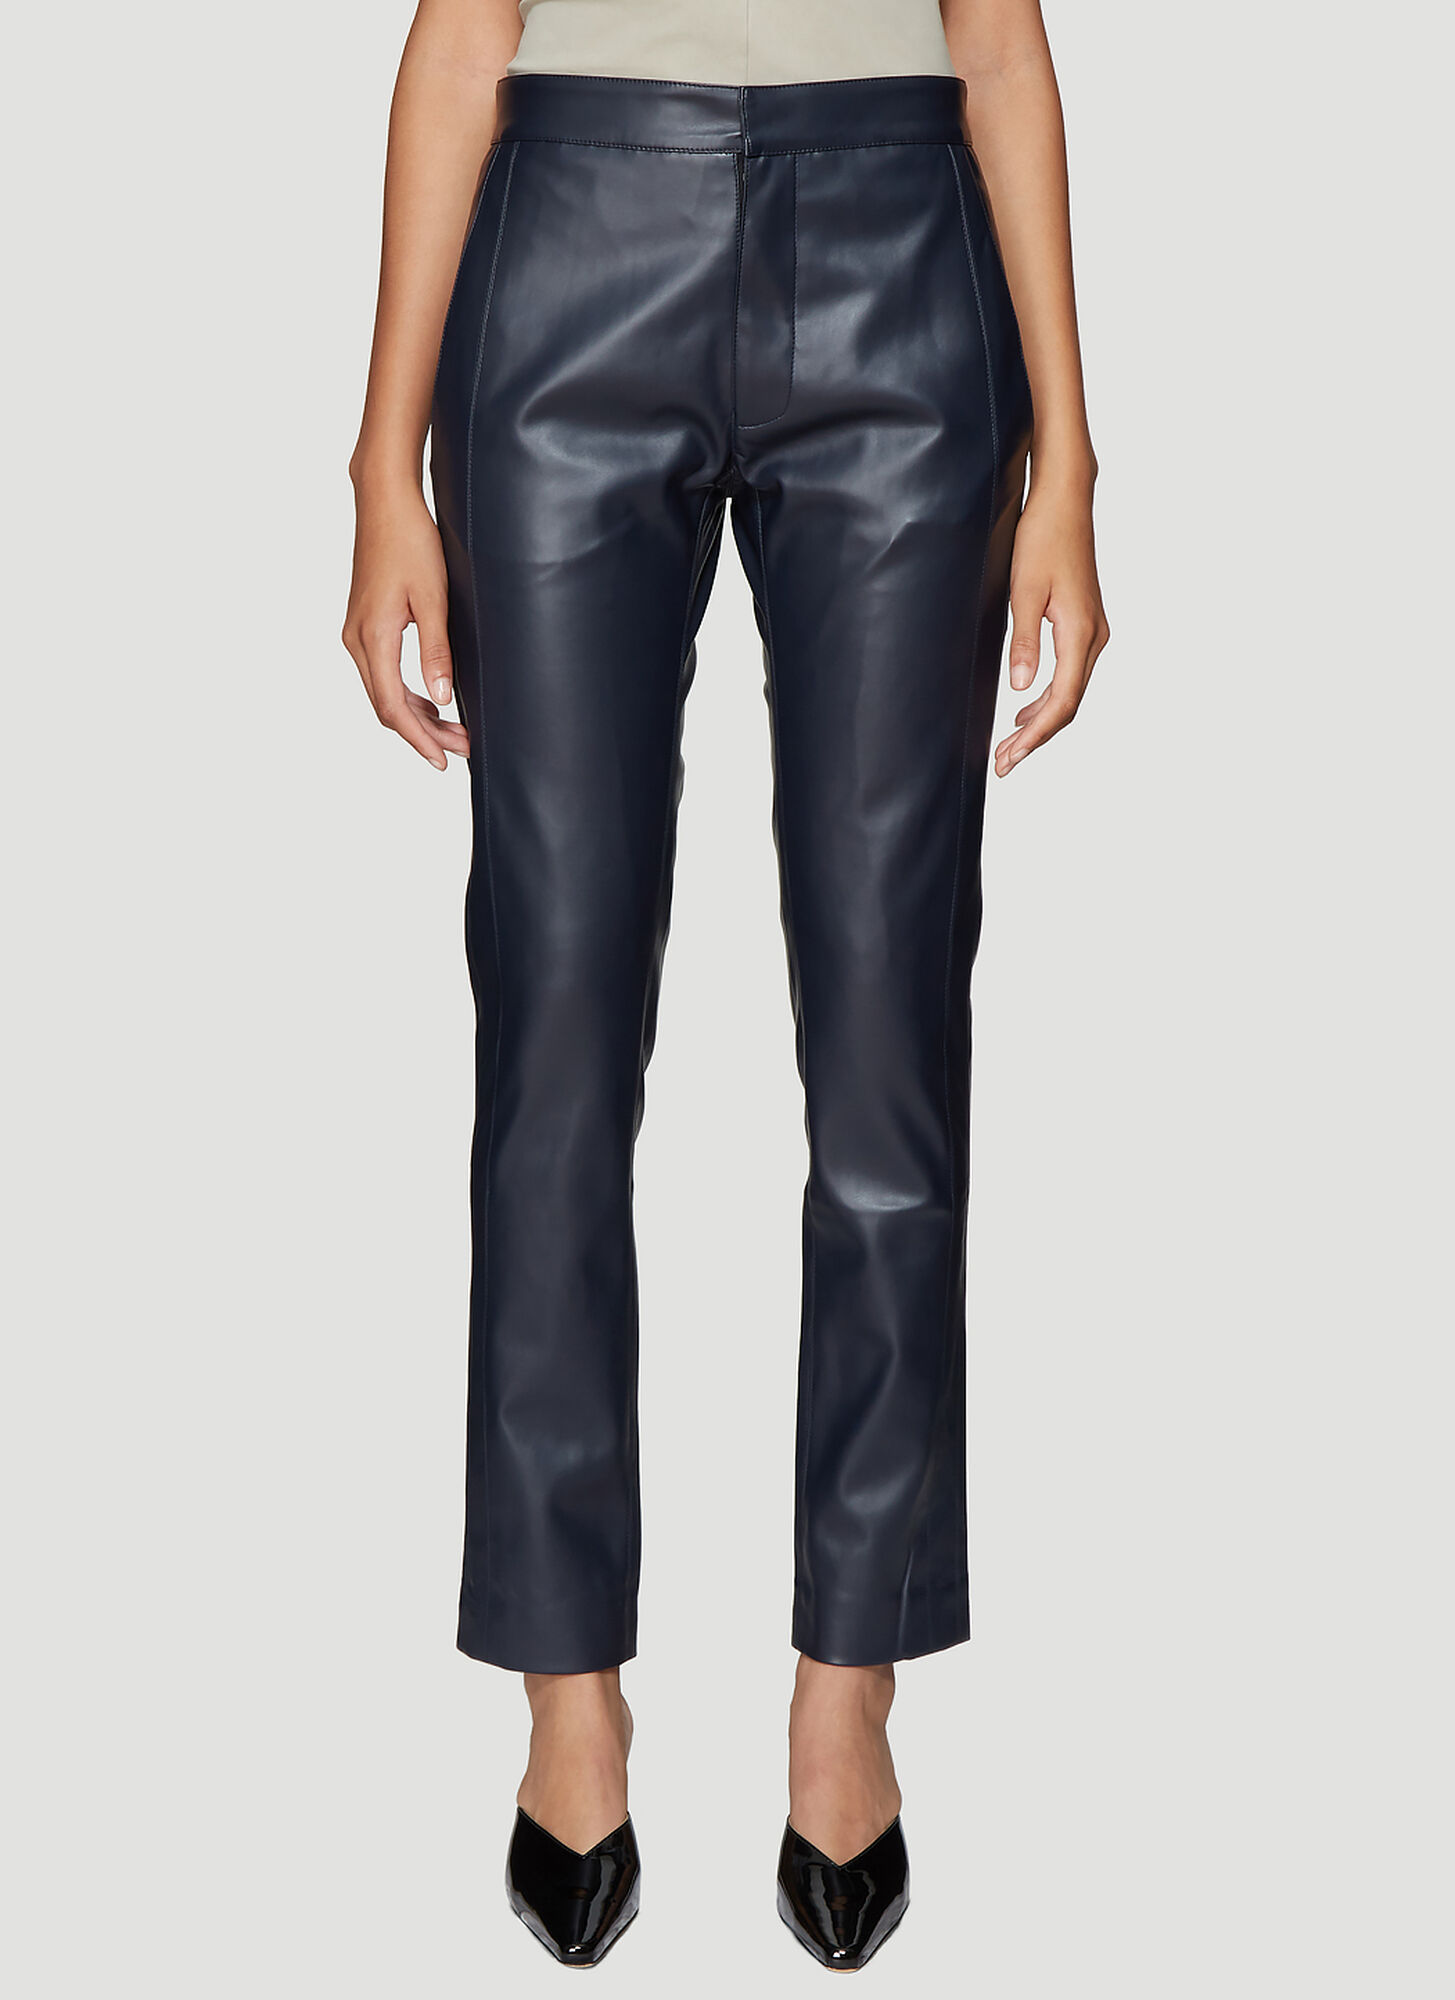 Roni Ilan Faux Leather Pants in Navy